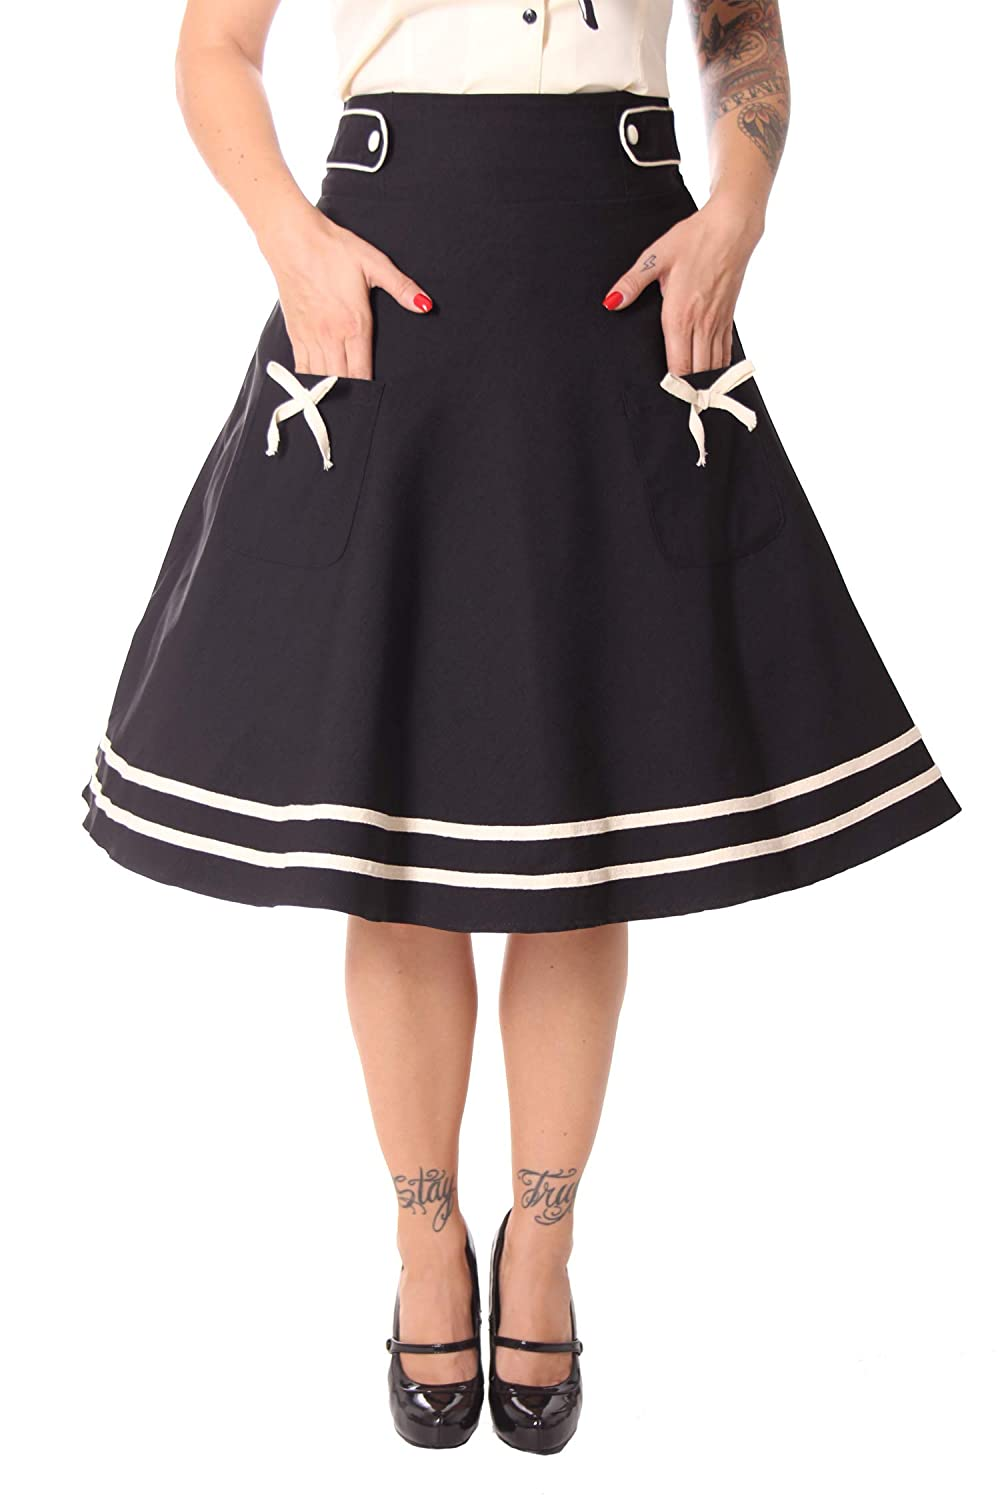 SugarShock SugarShock SugarShock Damen Petticoat Rock Oletta Sailor B07JM1JPN7 Röcke Britisches Temperament 96c130